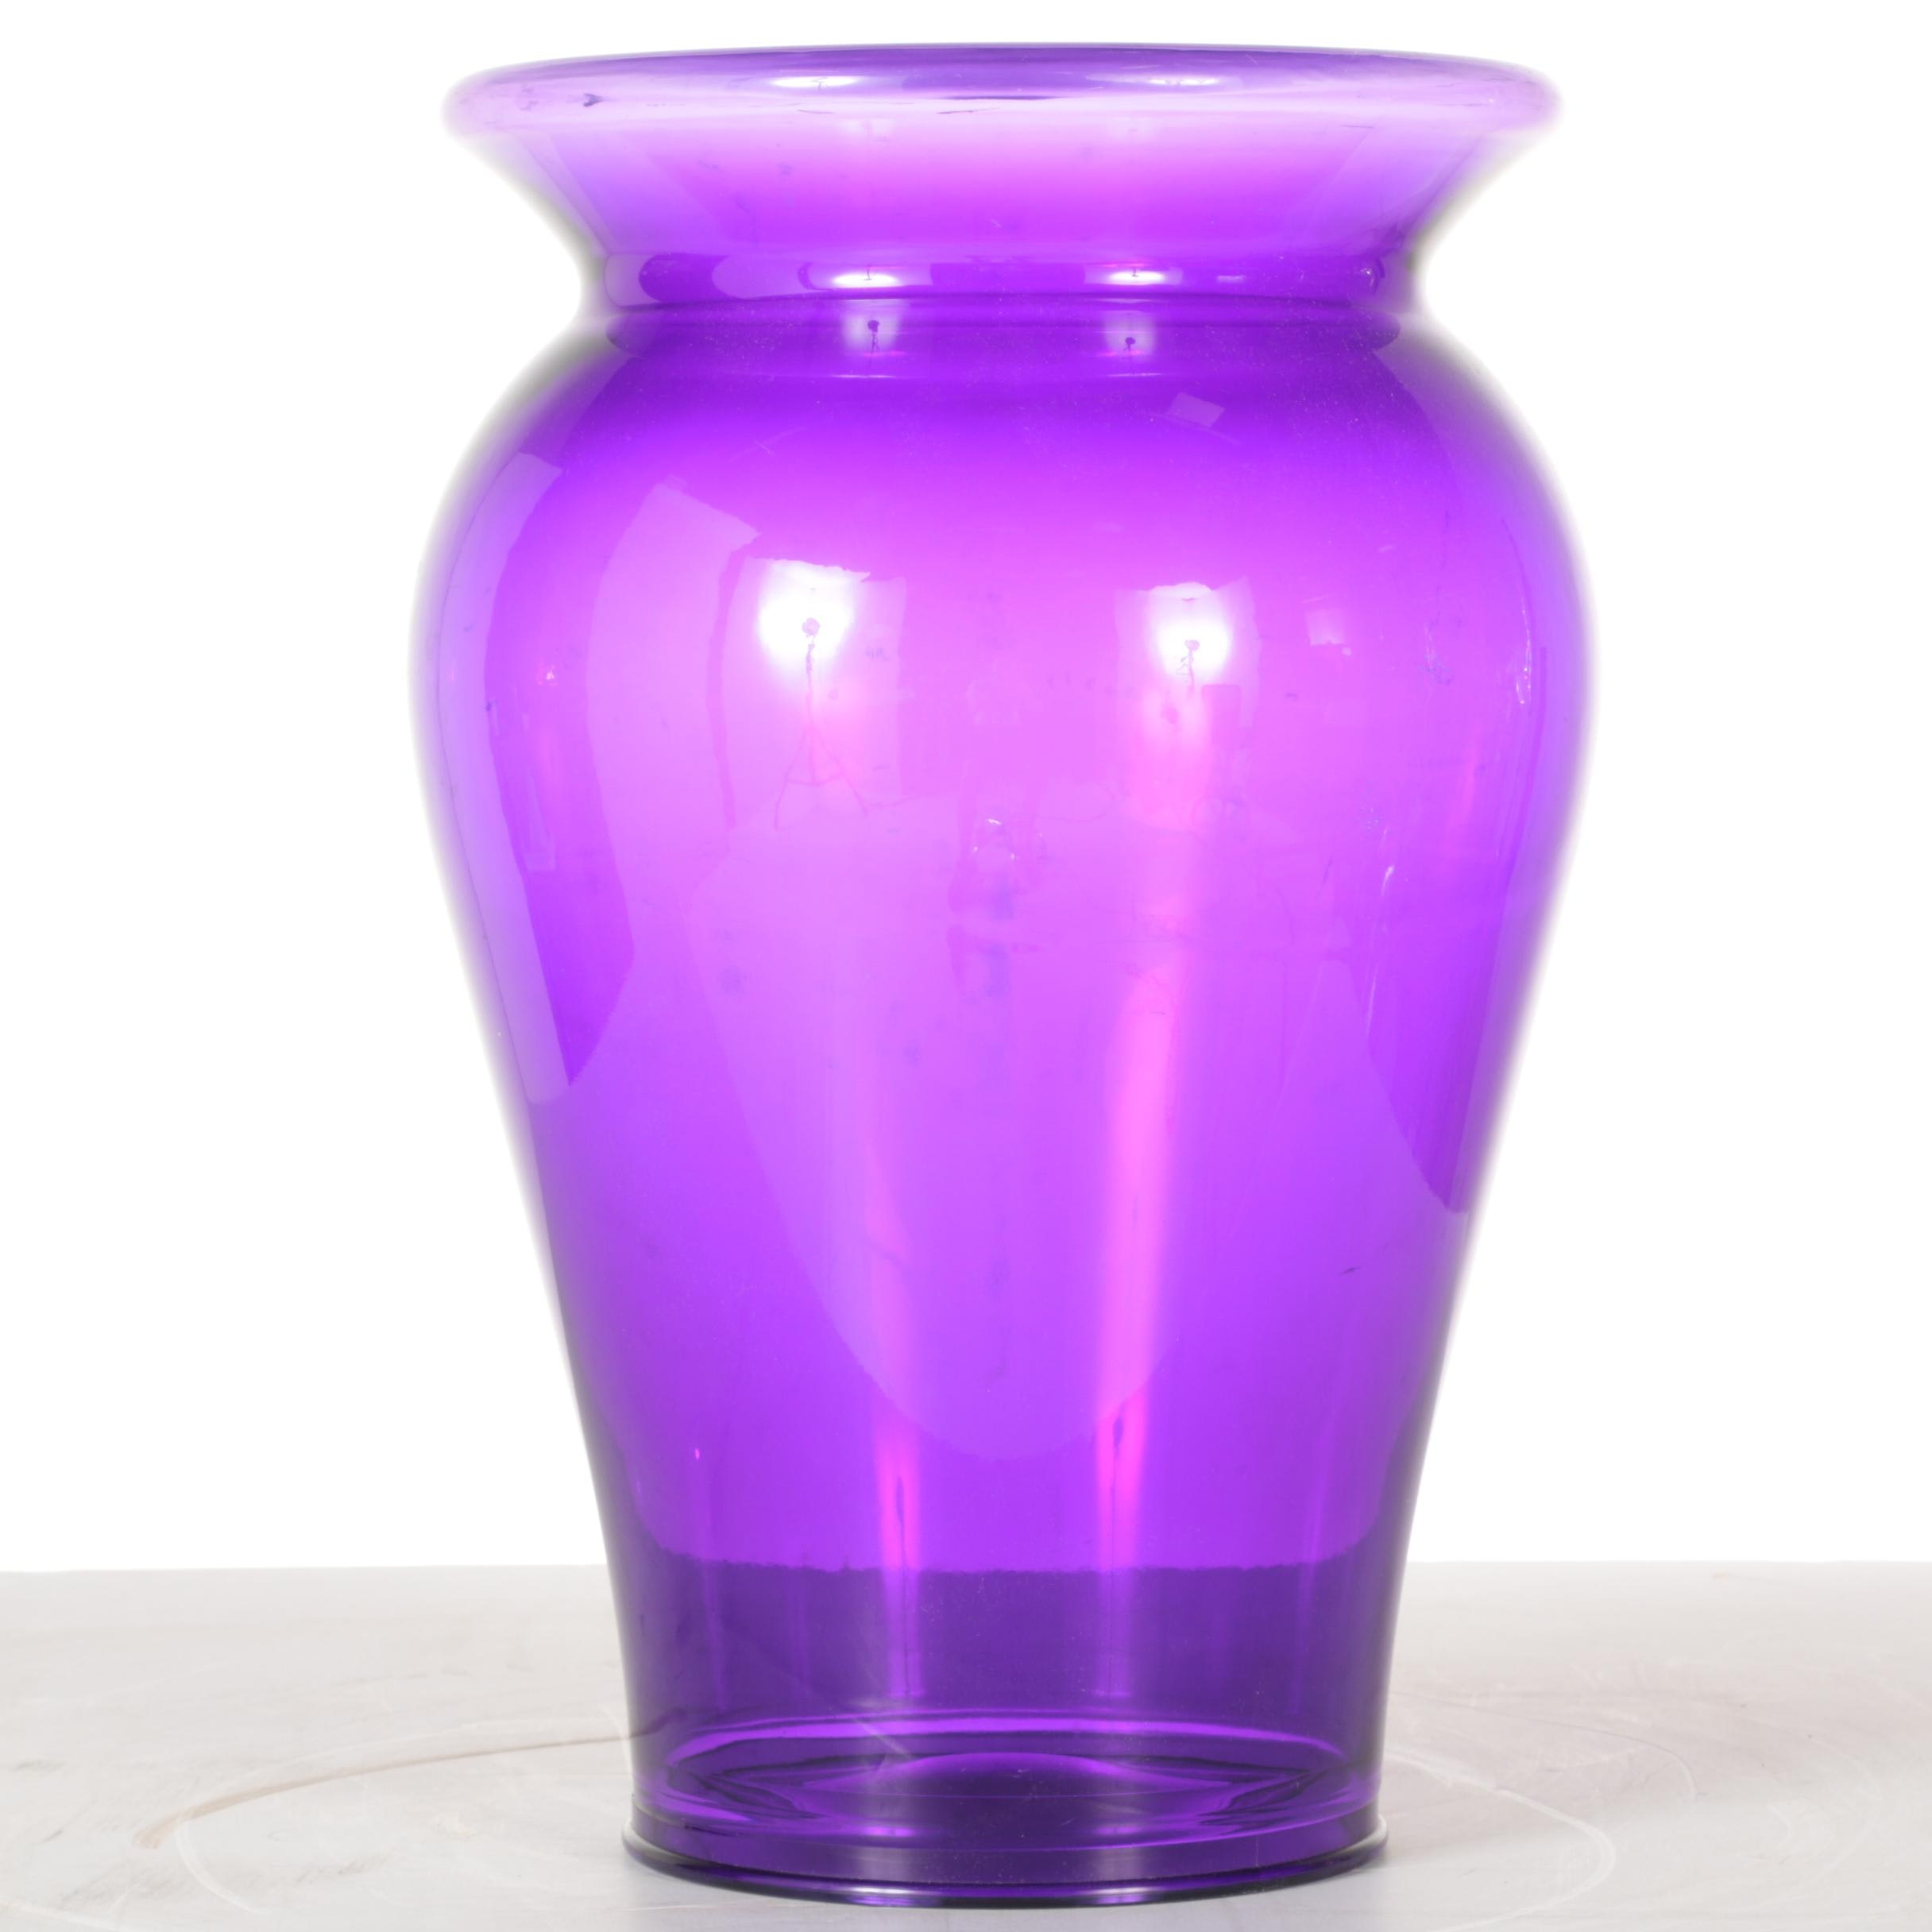 Purple Bohem Stool/Side Table by Kartell With Starck